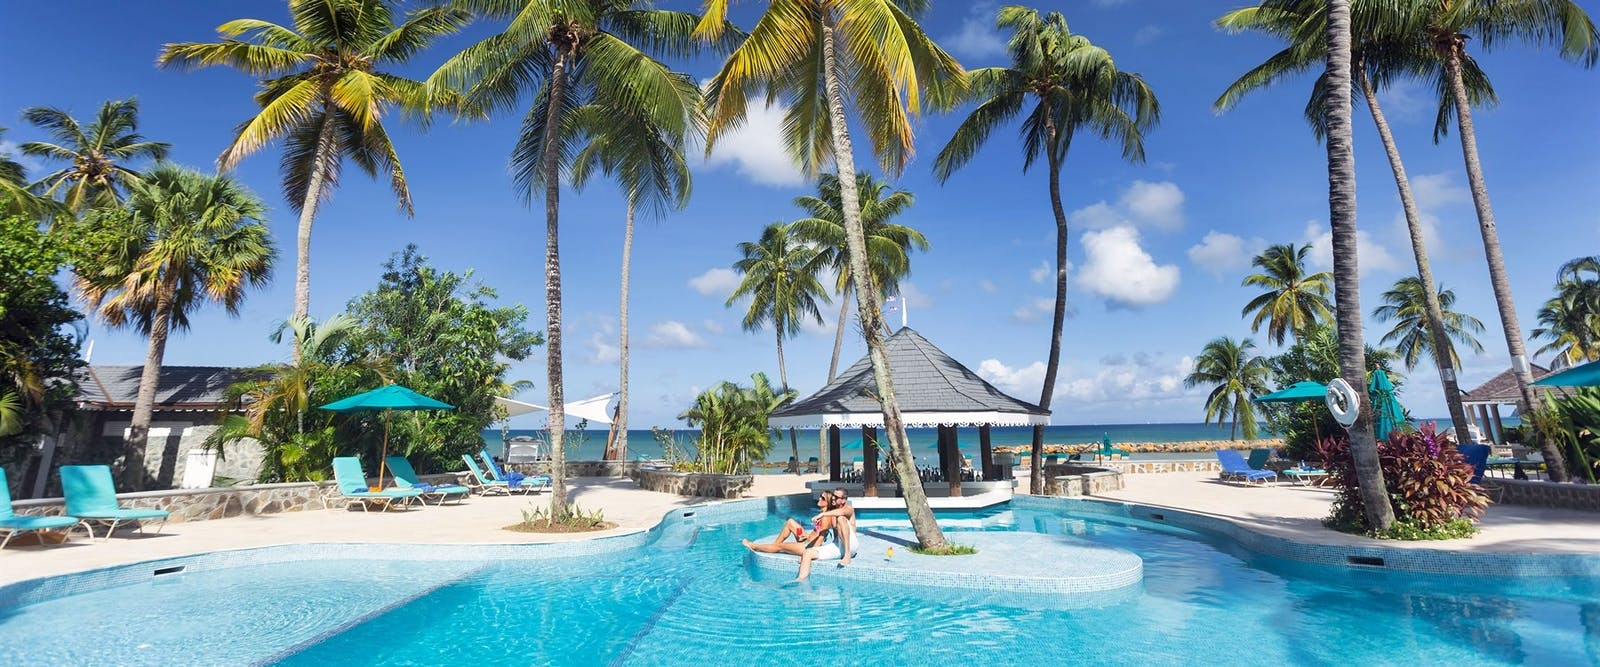 Main pool area overlooking the ocean at Rendezvous, St Lucia